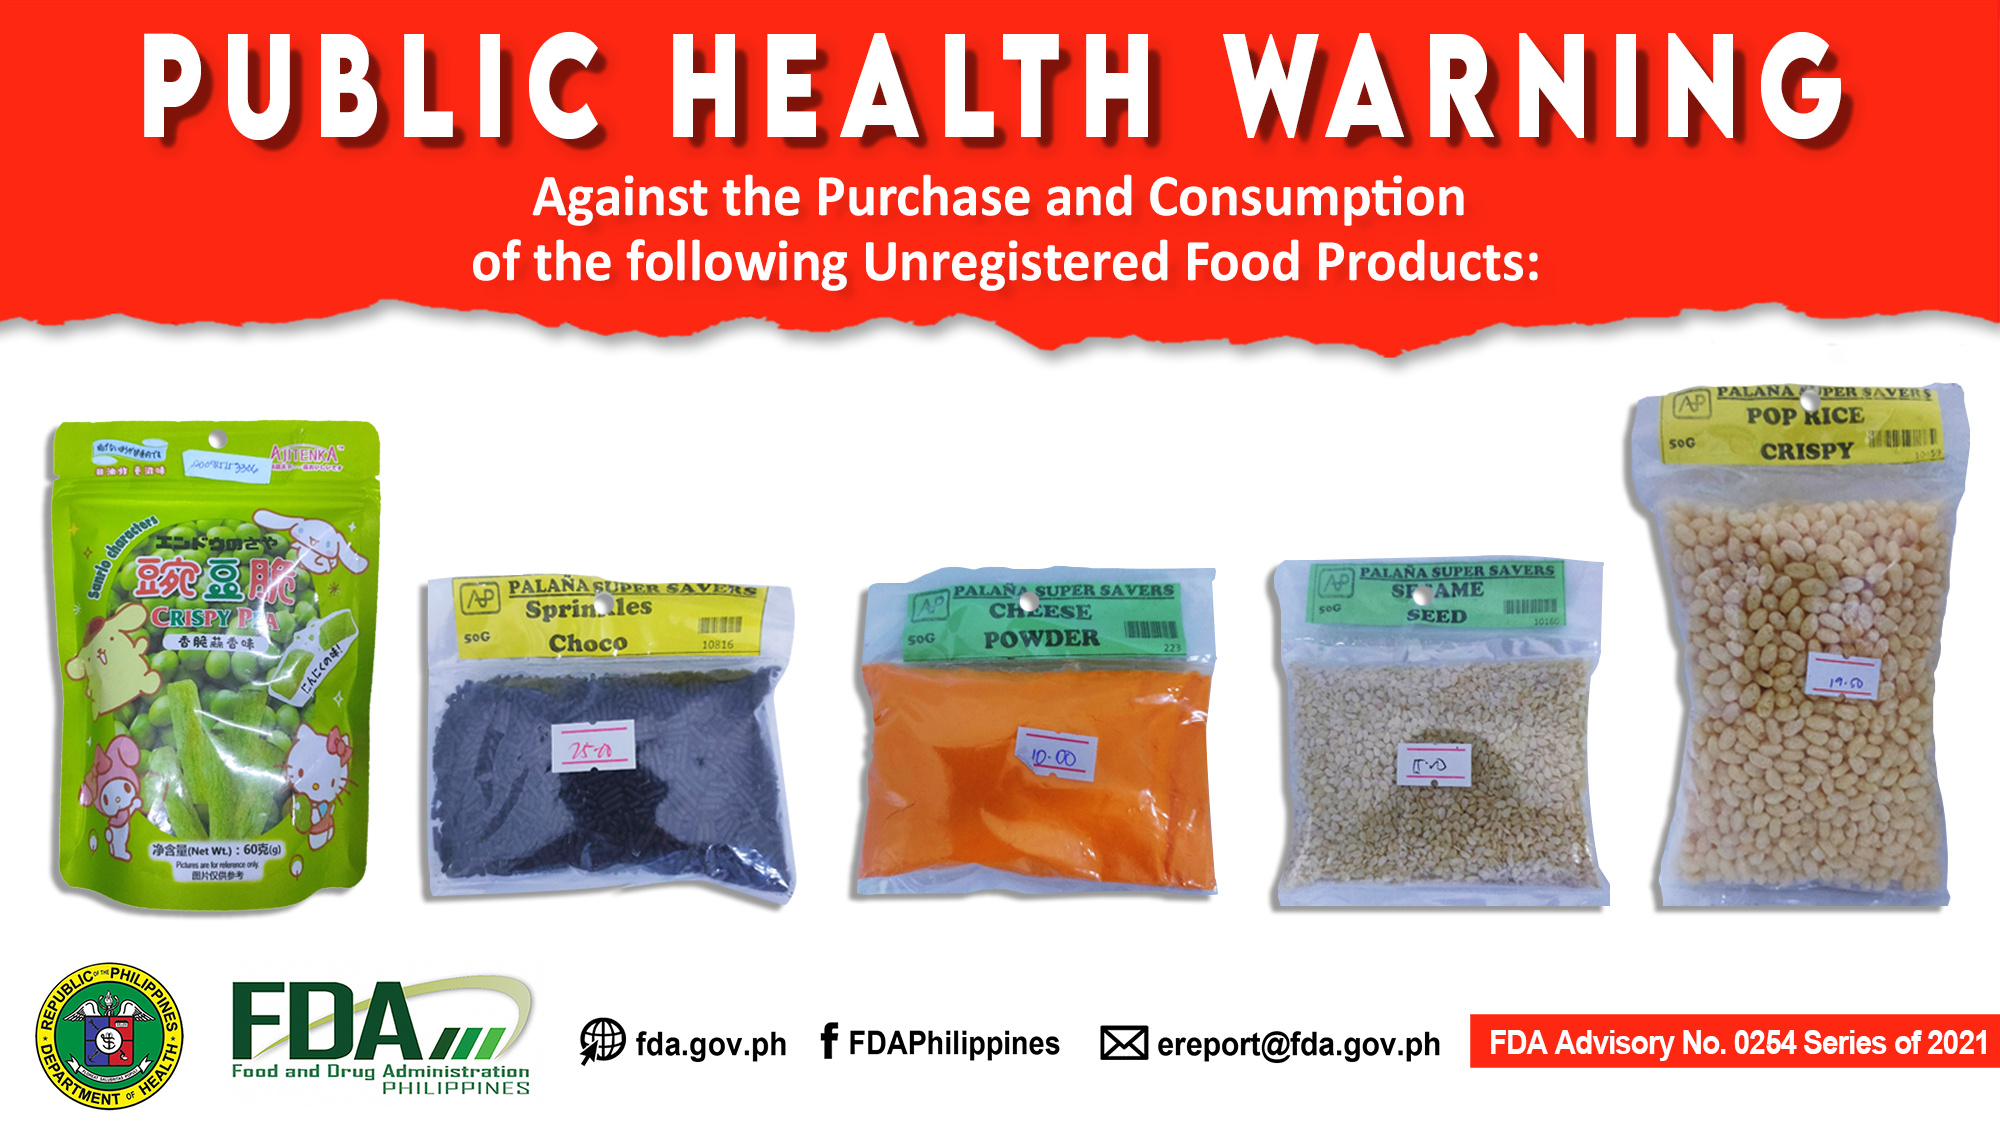 FDA Advisory No.2021-0254 || Public Health Warning Against the Purchase and Consumption of the following Unregistered Food Products: